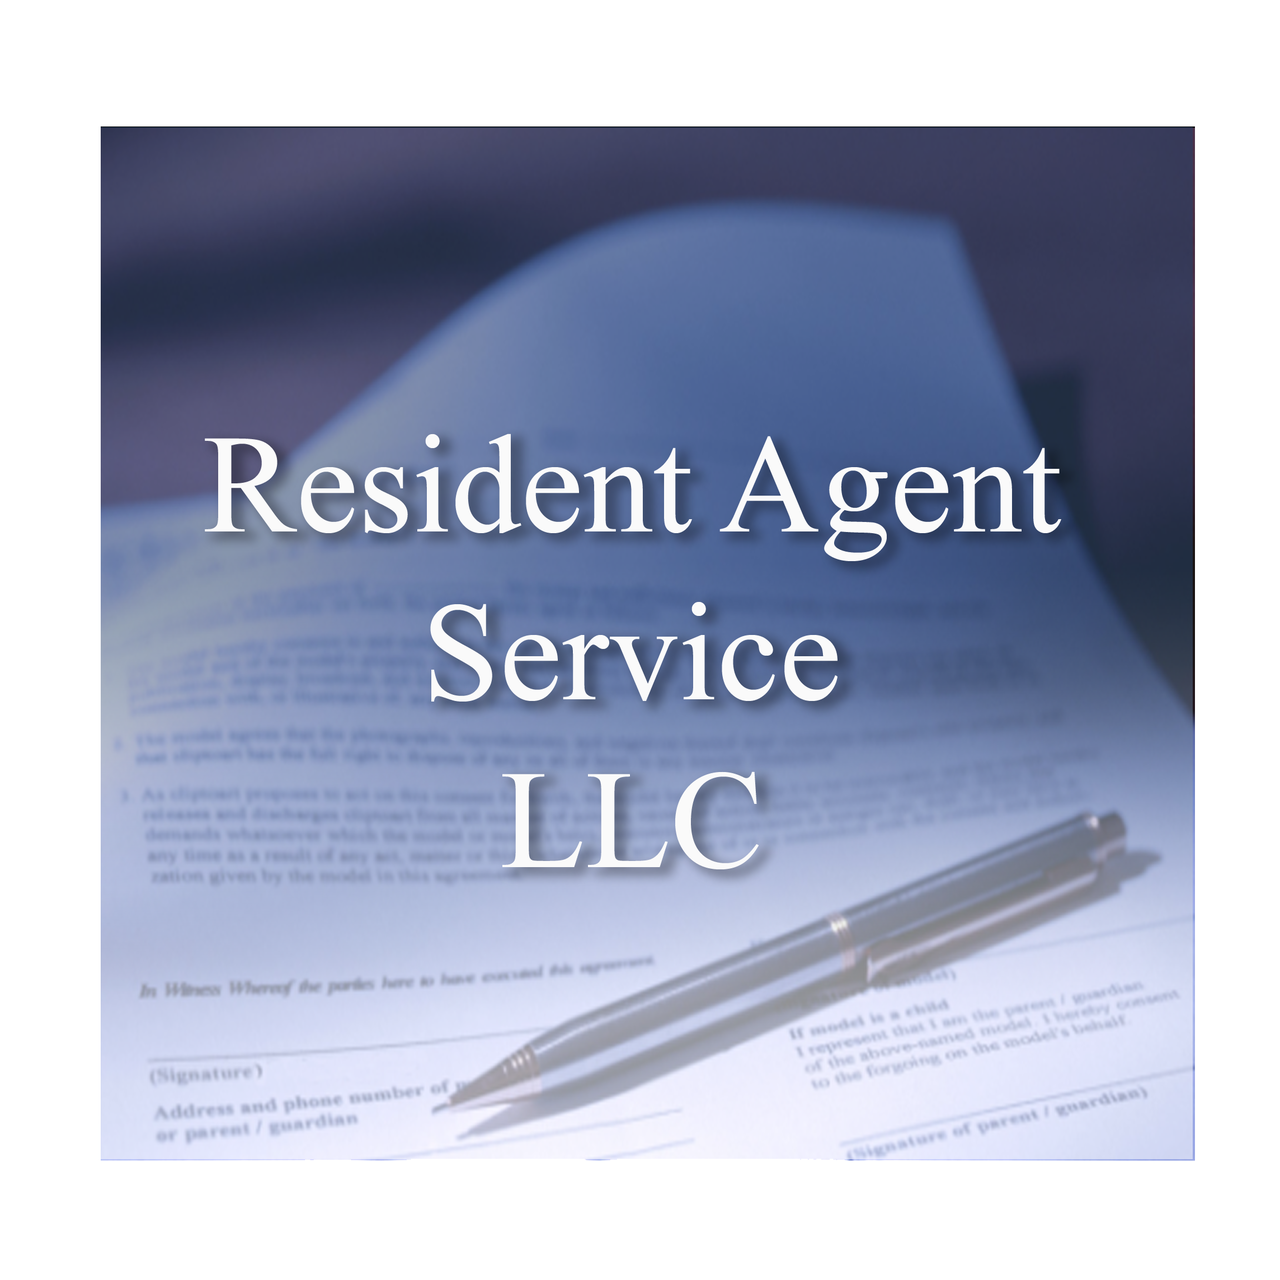 Choose Us As Your Nevada Registered Agent  Resident. Mortgage Broker Orlando It Consulting Company. Free Online Payment Service Plummers West La. Environmental Test Equipment Hz In Seconds. Federal Audit Clearinghouse Att Uverse Phone. Data Analytics Business Intelligence. Why Use Social Media Marketing. What Are The 3 Major Credit Reporting Agencies. Ui Ux Design Principles Internet Access Price